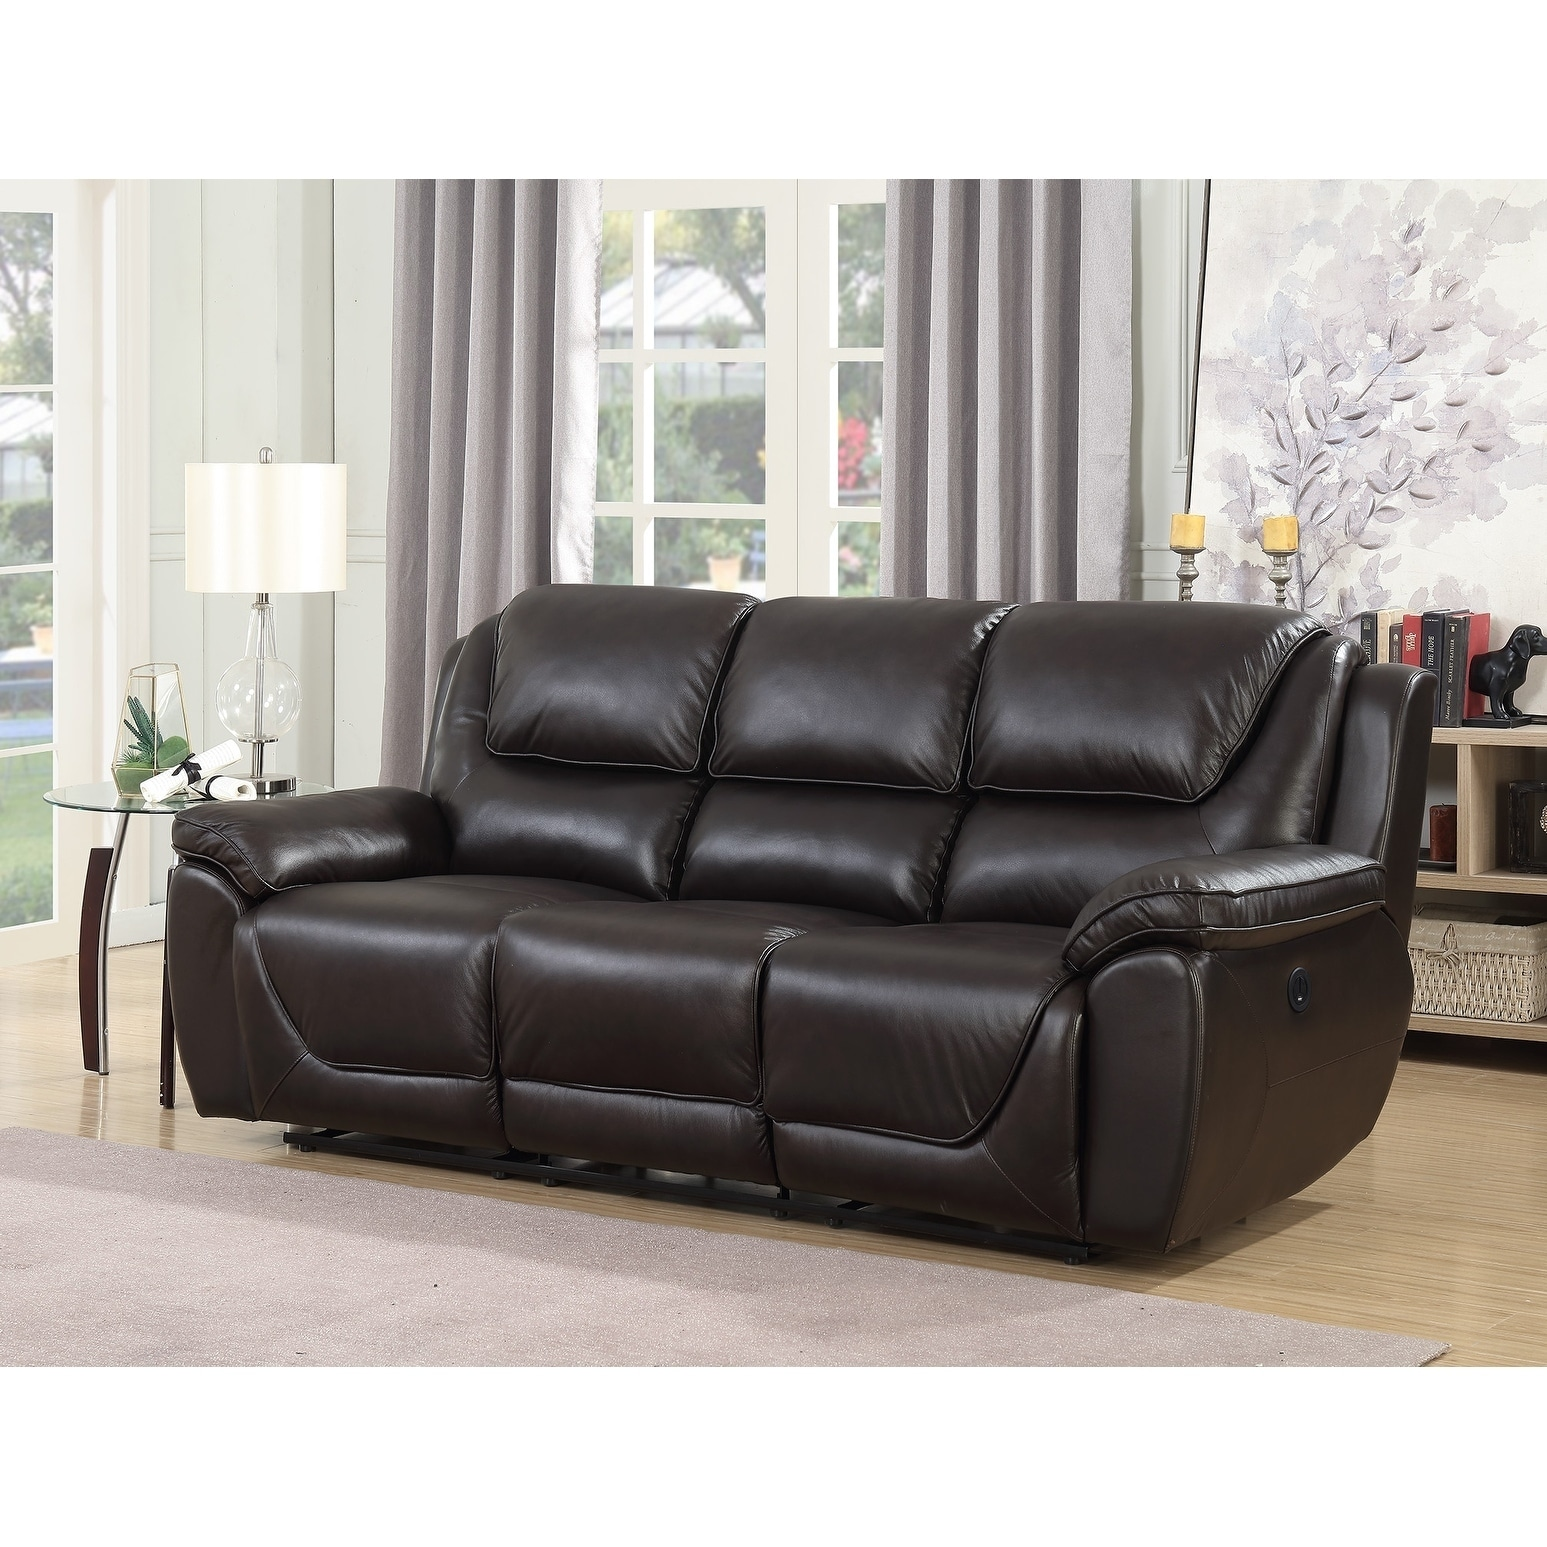 Strange Real Leather Recliner Sofa Home The Honoroak Andrewgaddart Wooden Chair Designs For Living Room Andrewgaddartcom